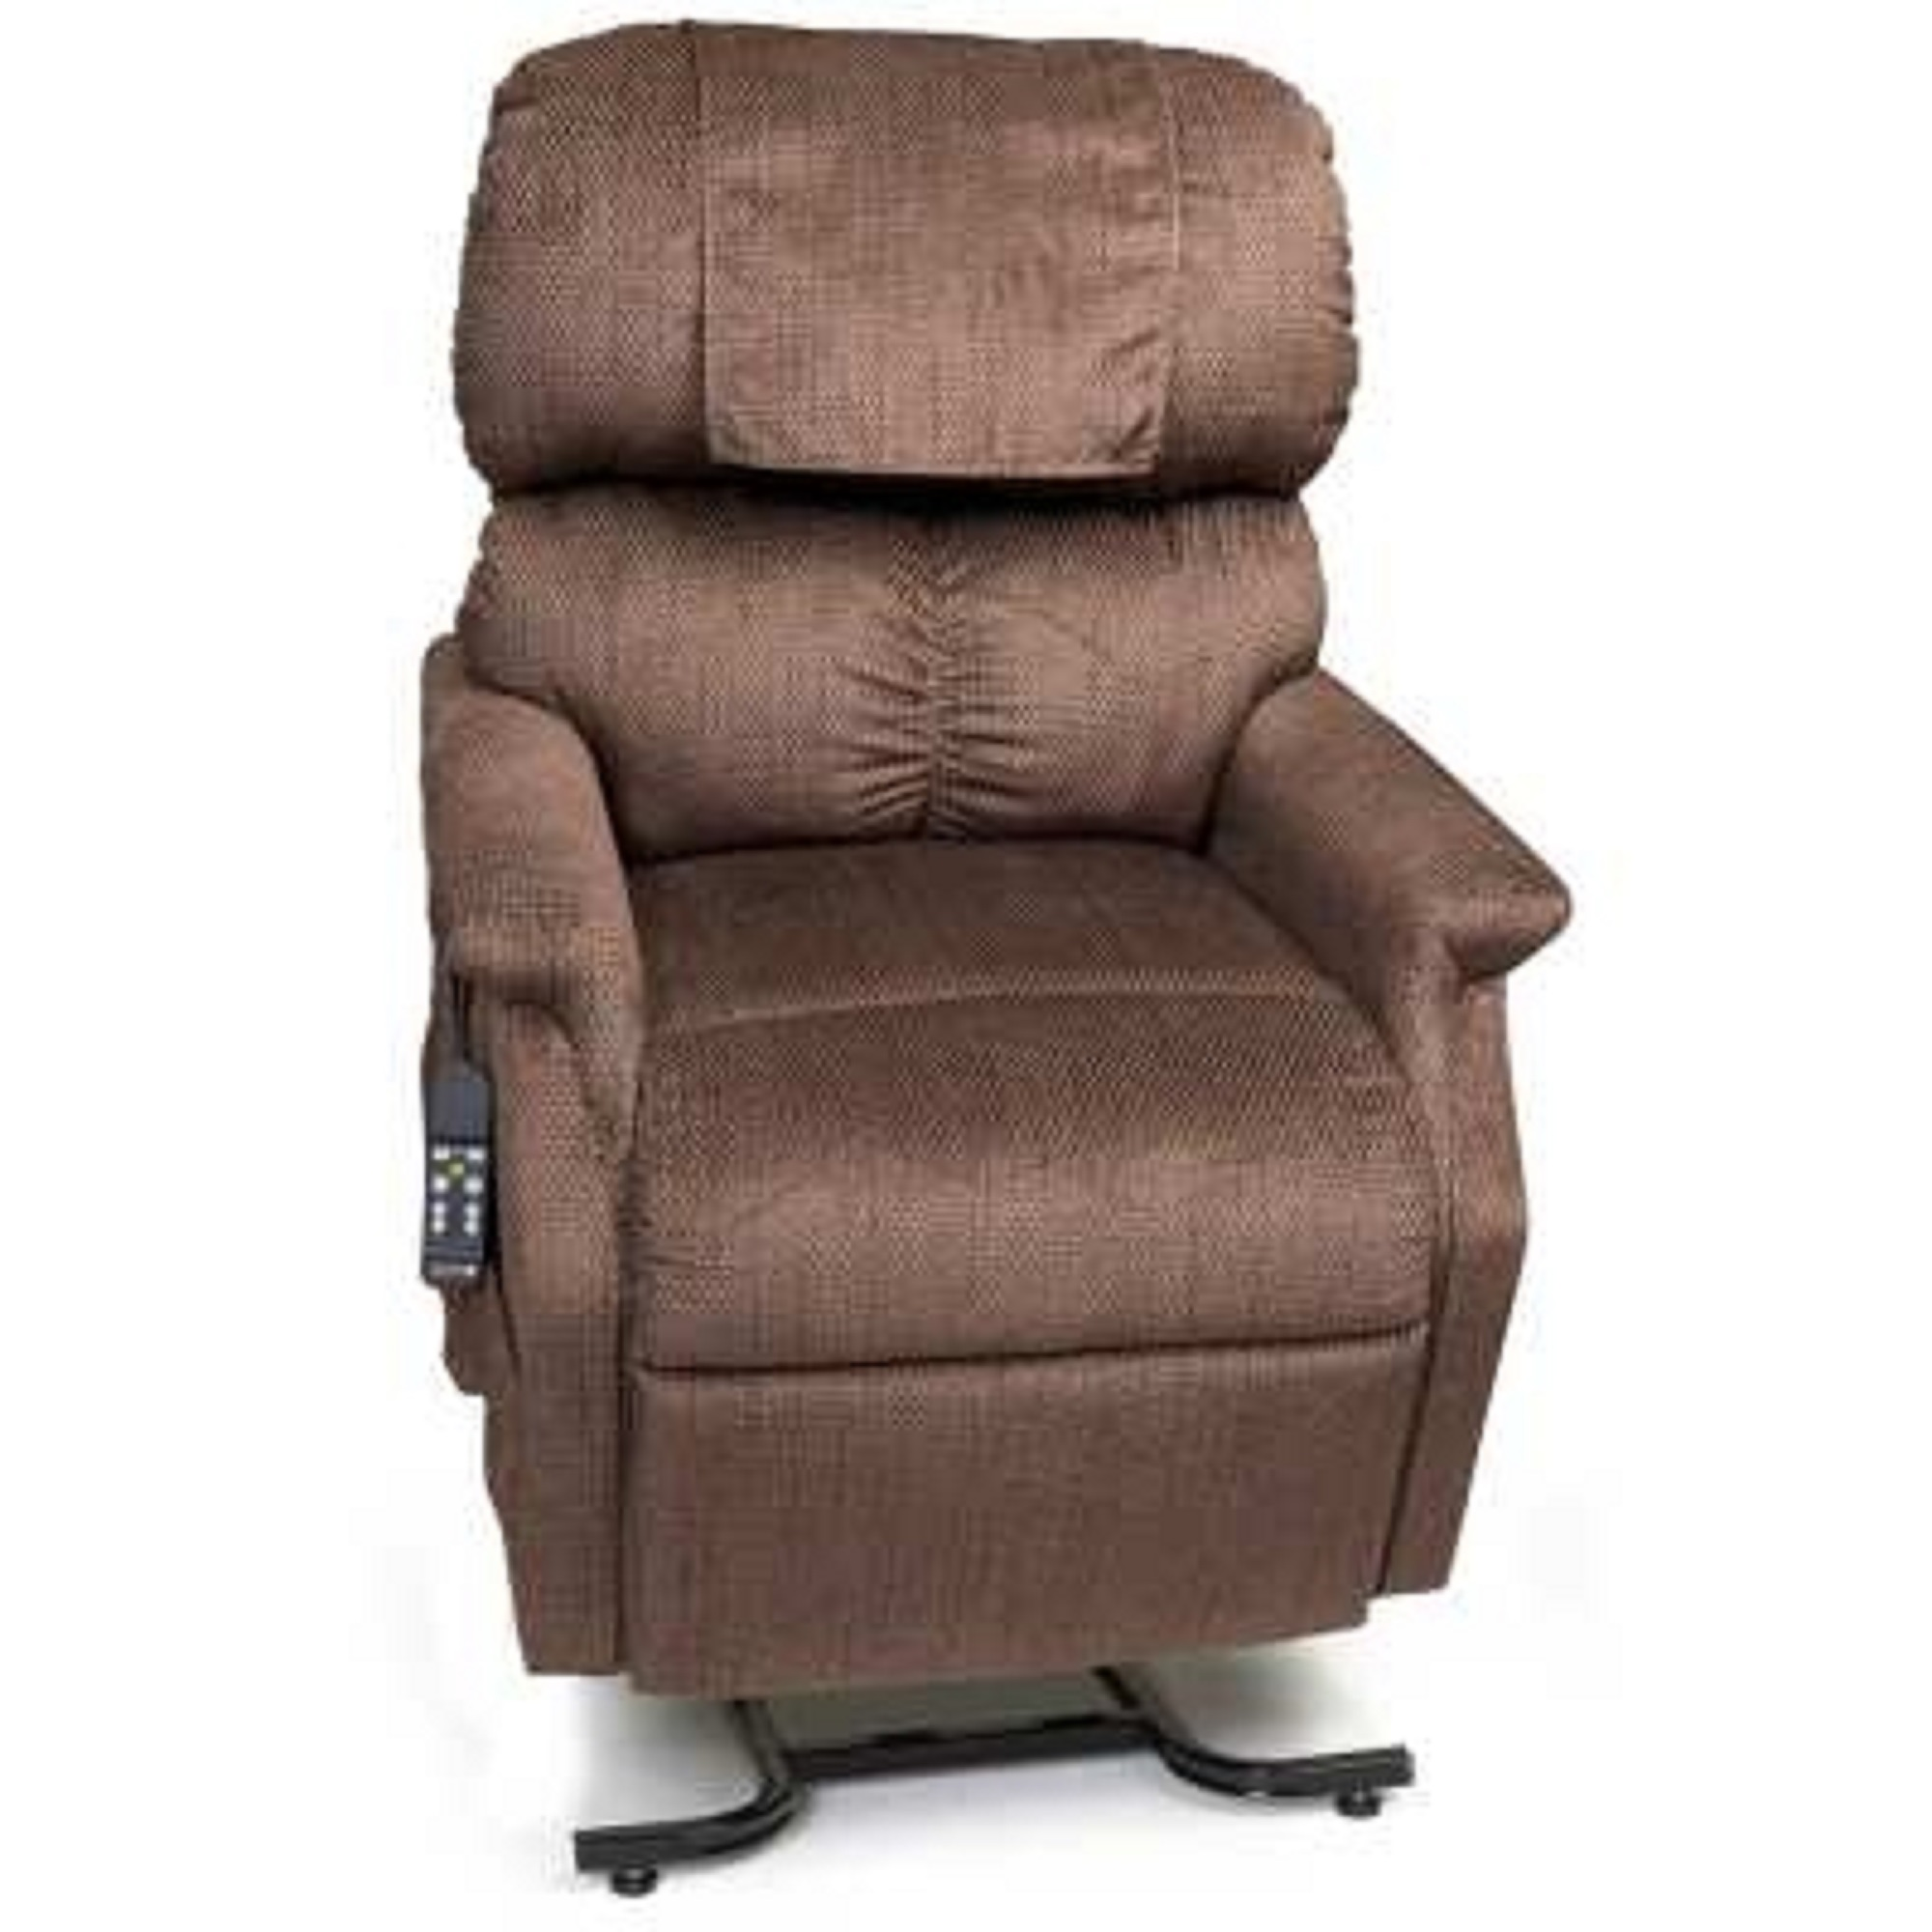 "Golden Technologies - Maxicomfort Comforter - Lift Chair - Large - 23""W x 22""D Seat - Palomino"